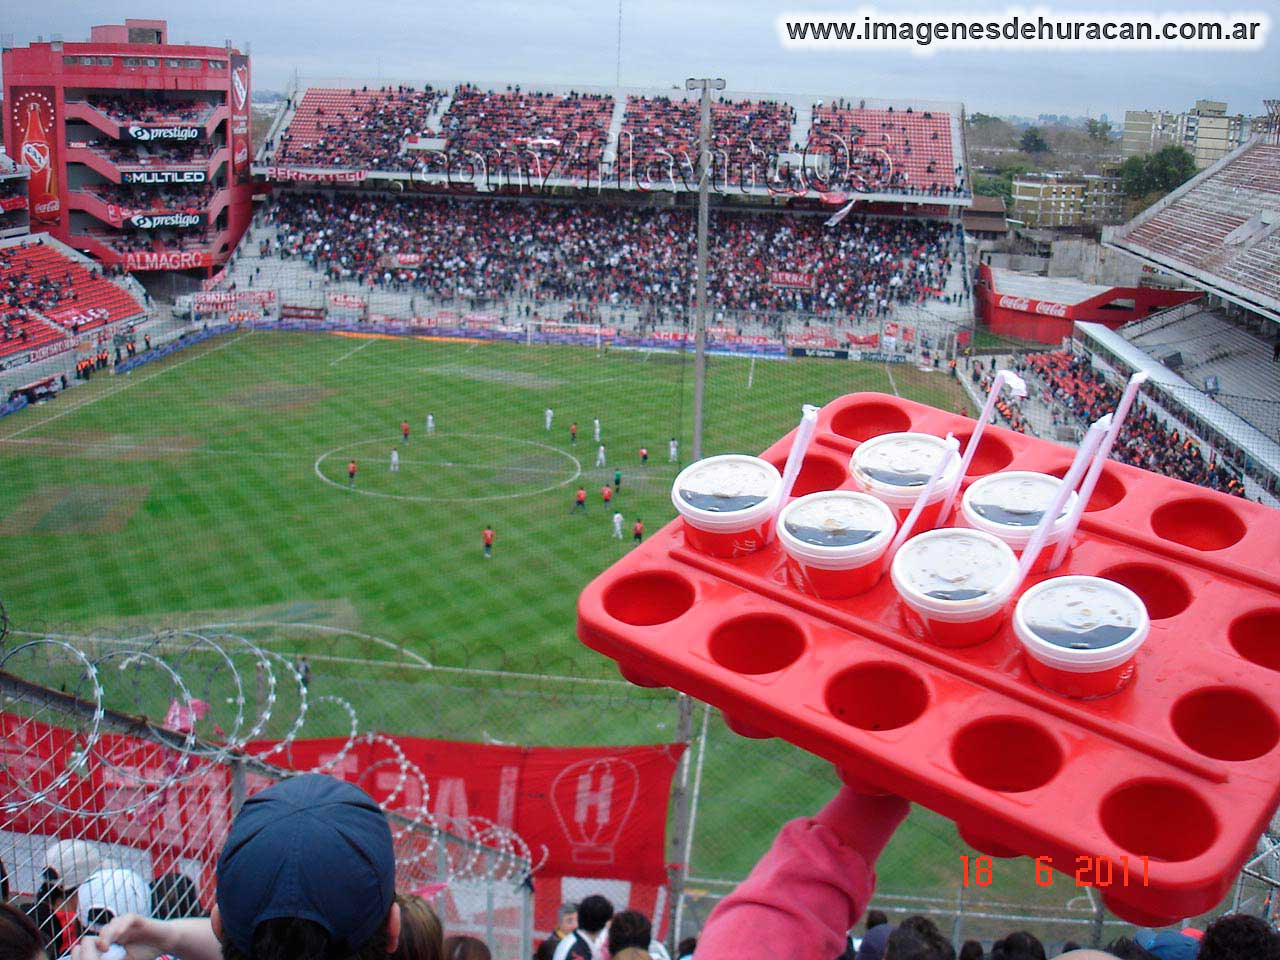 cocacolero en independiente